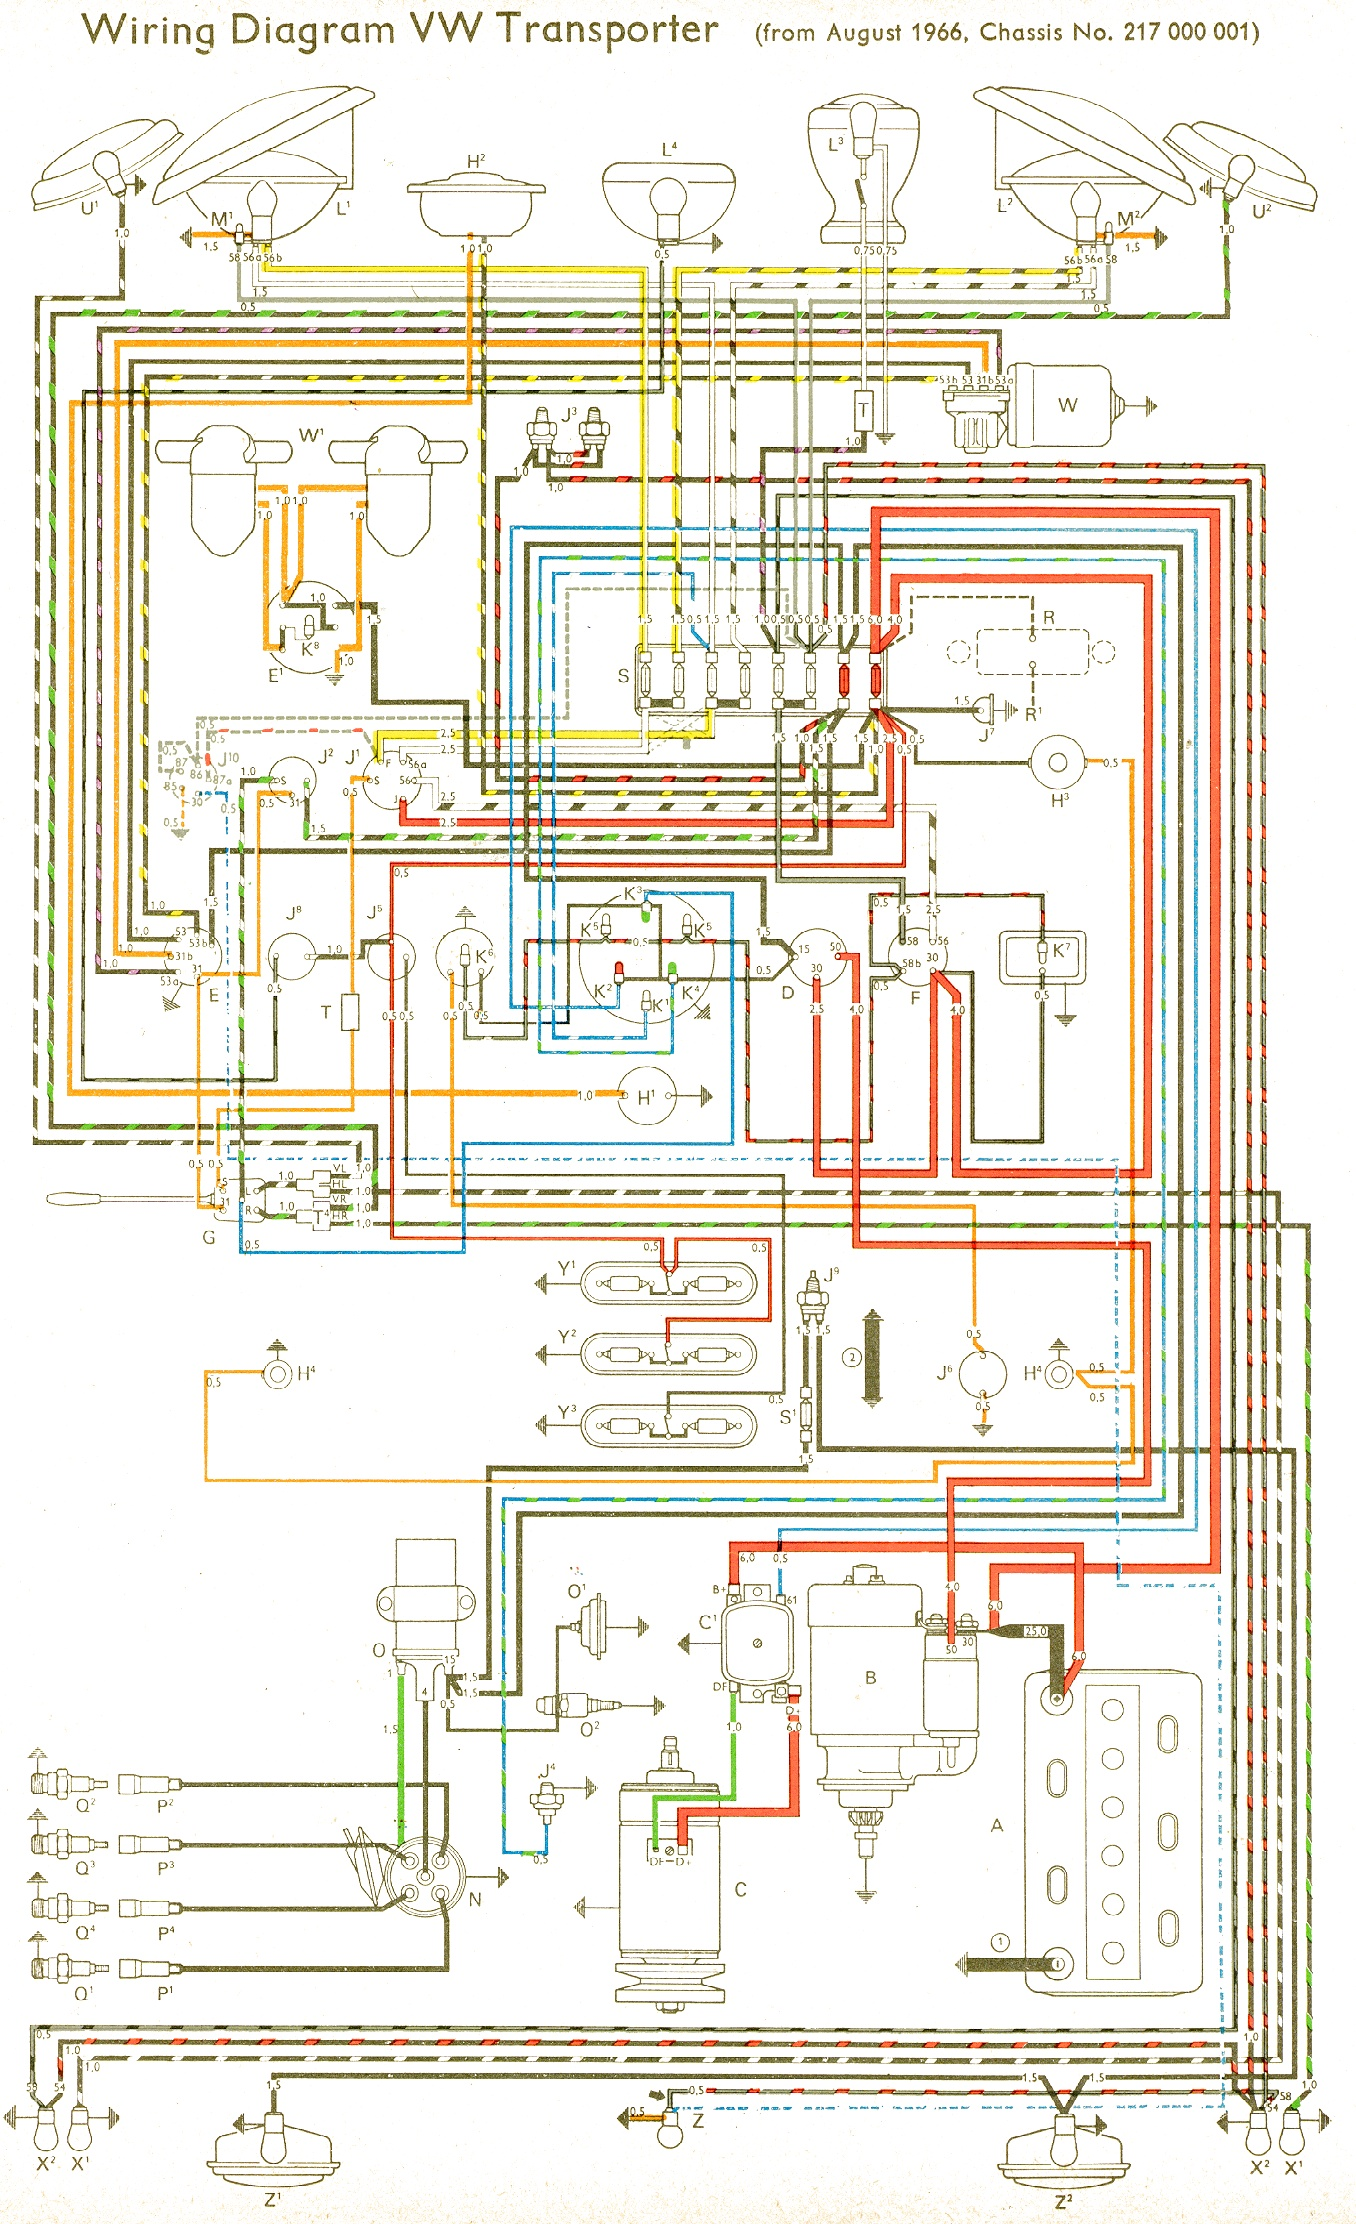 1972 Vw Beetle Turn Signal Wiring Diagram Just Another 72 Volkswagen 1974 Bus Online Rh 3 7 Aquarium Ag Goyatz De 1971 Super 1973